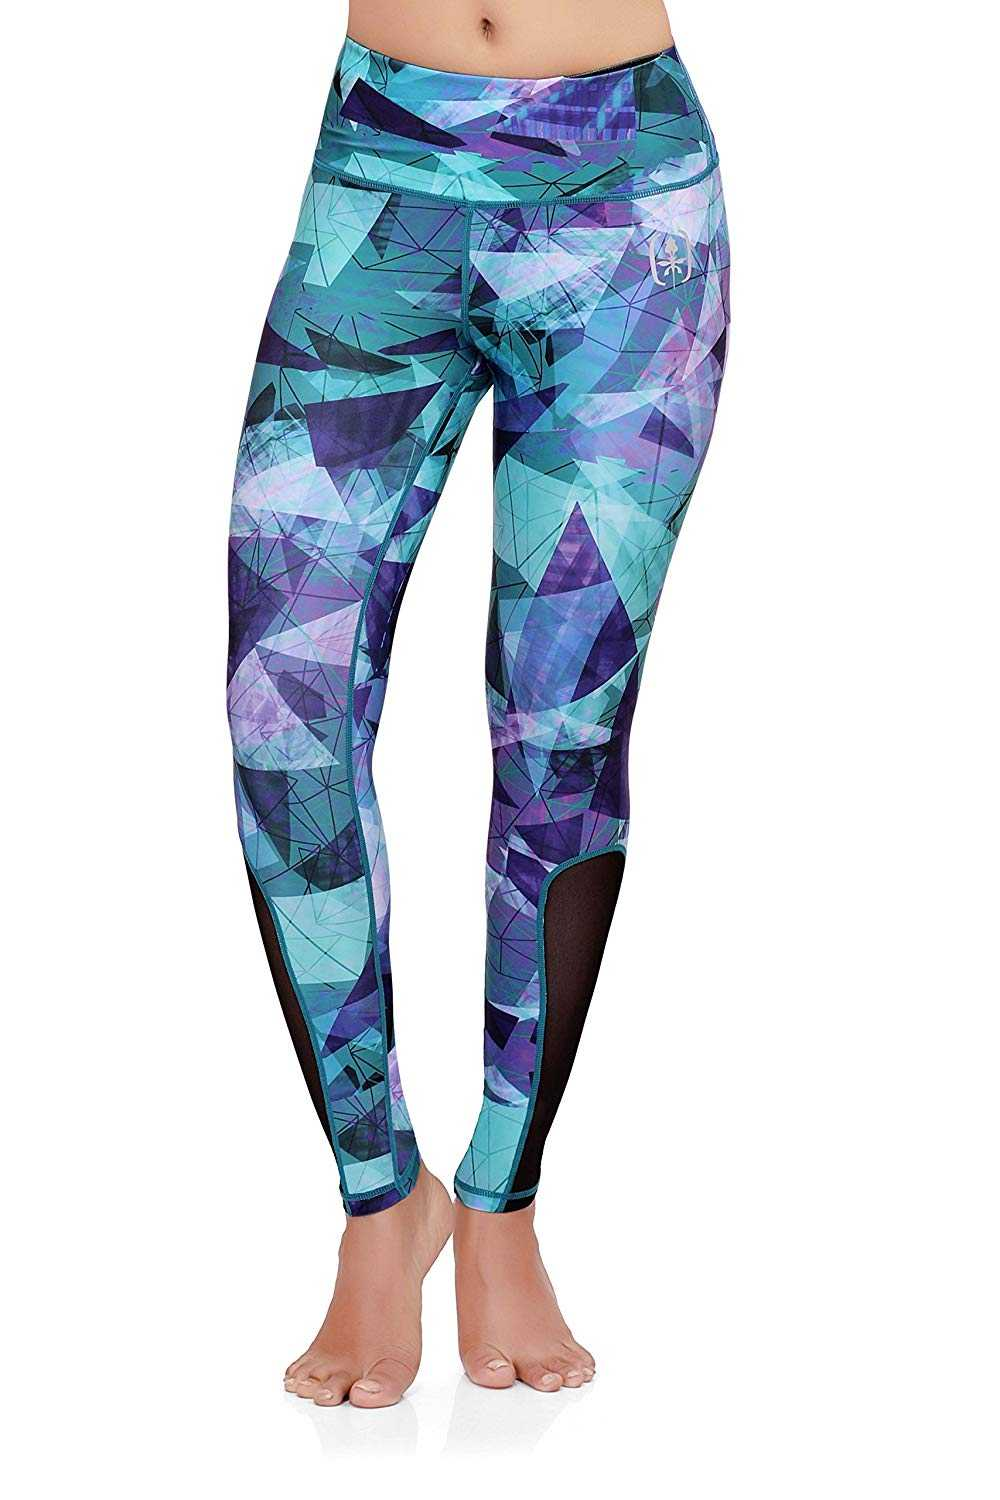 Omtex-Athletica-Activewear-Bottoms-for-Women-Blue-Multicolor1